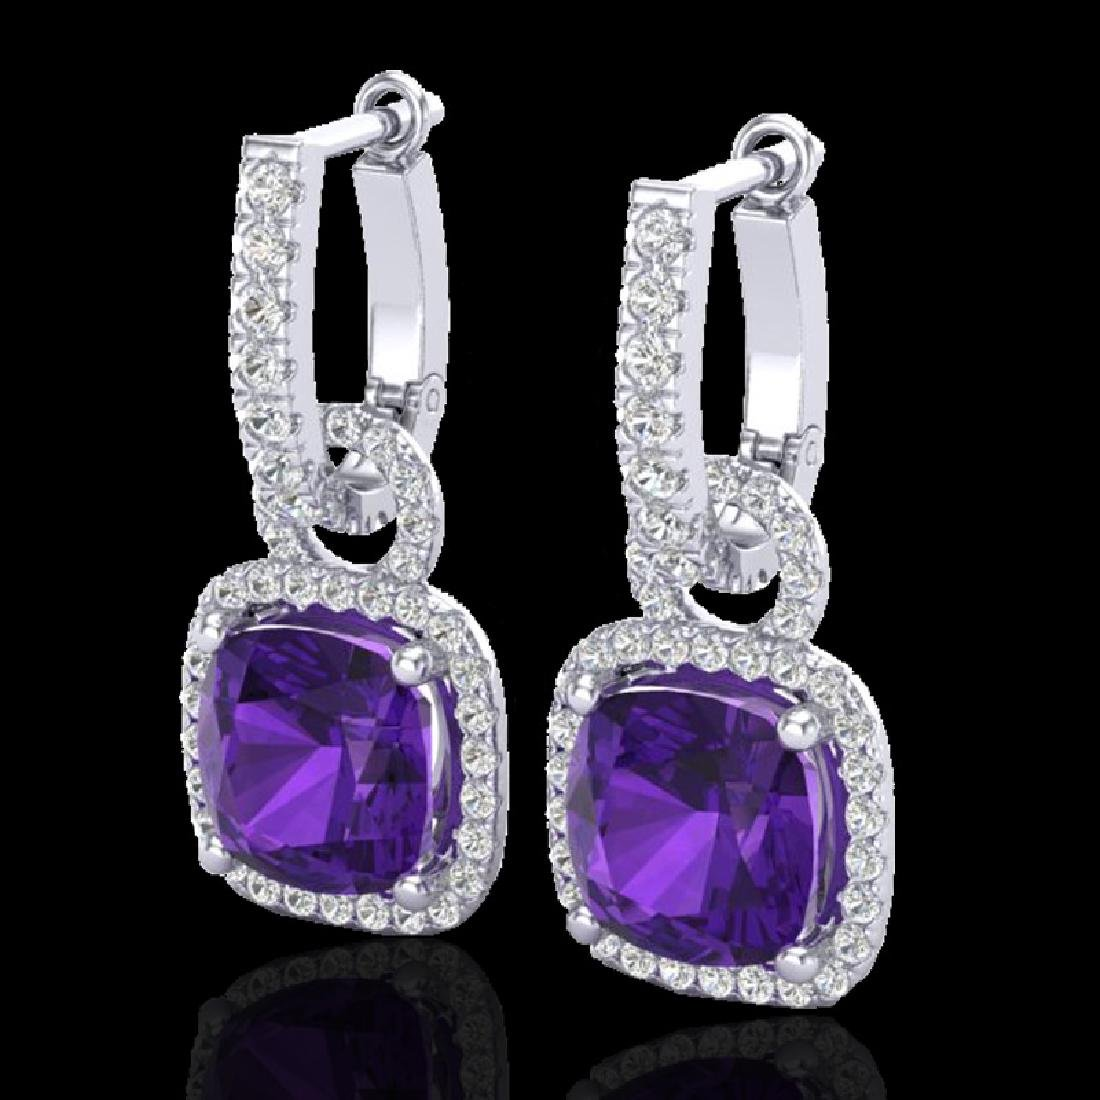 7 CTW Amethyst & Micro Pave VS/SI Diamond Earrings 18K